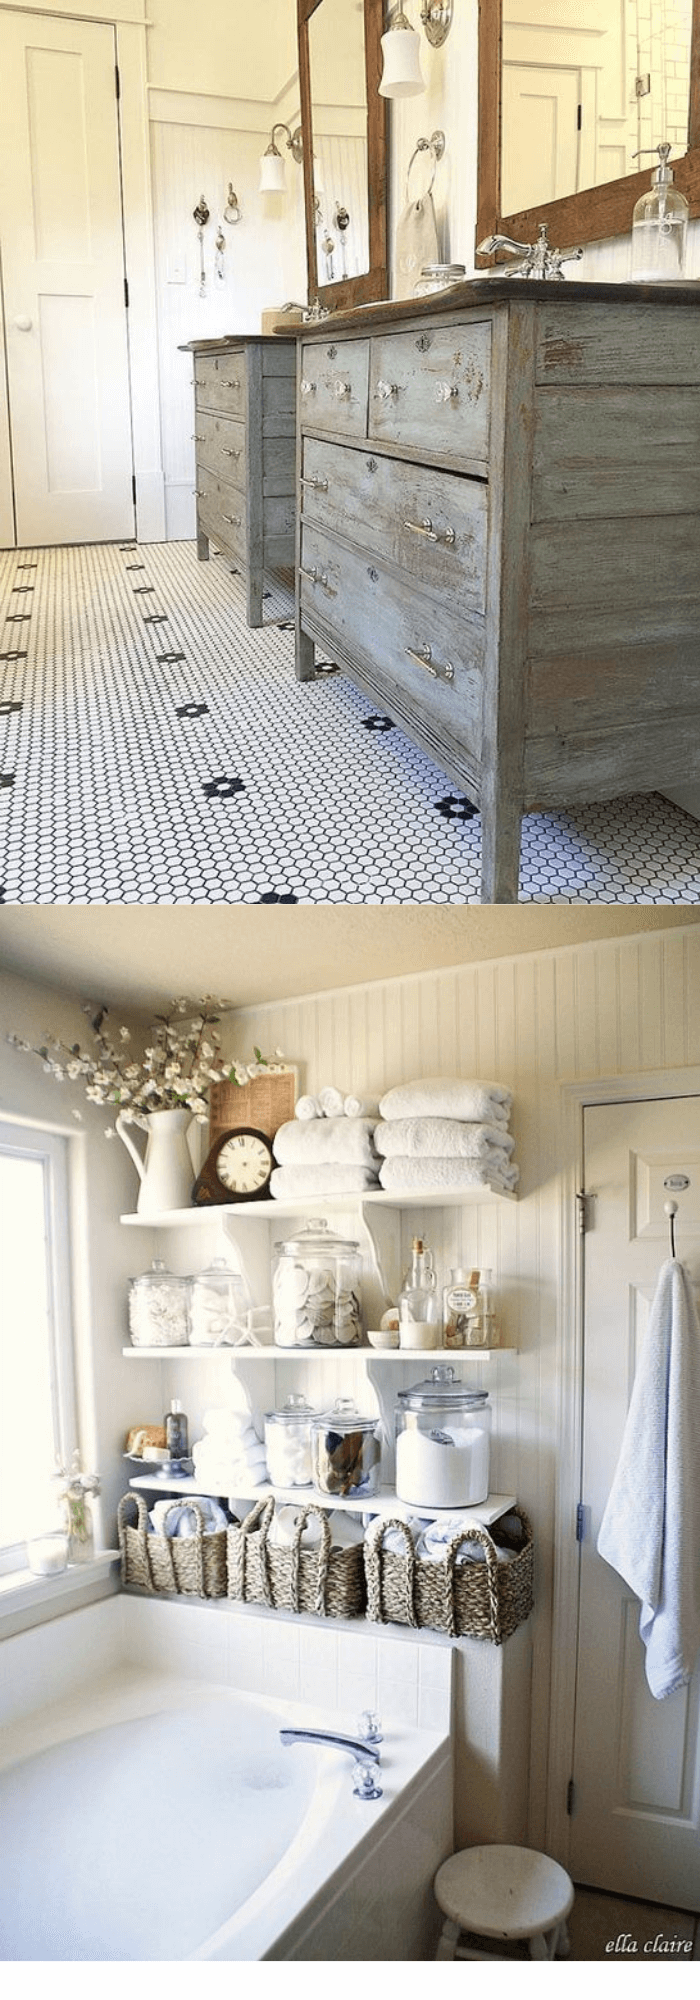 Charming Cottage Style Bathroom Ideas Double converted vanities, tile floor, painted side tables and shelves